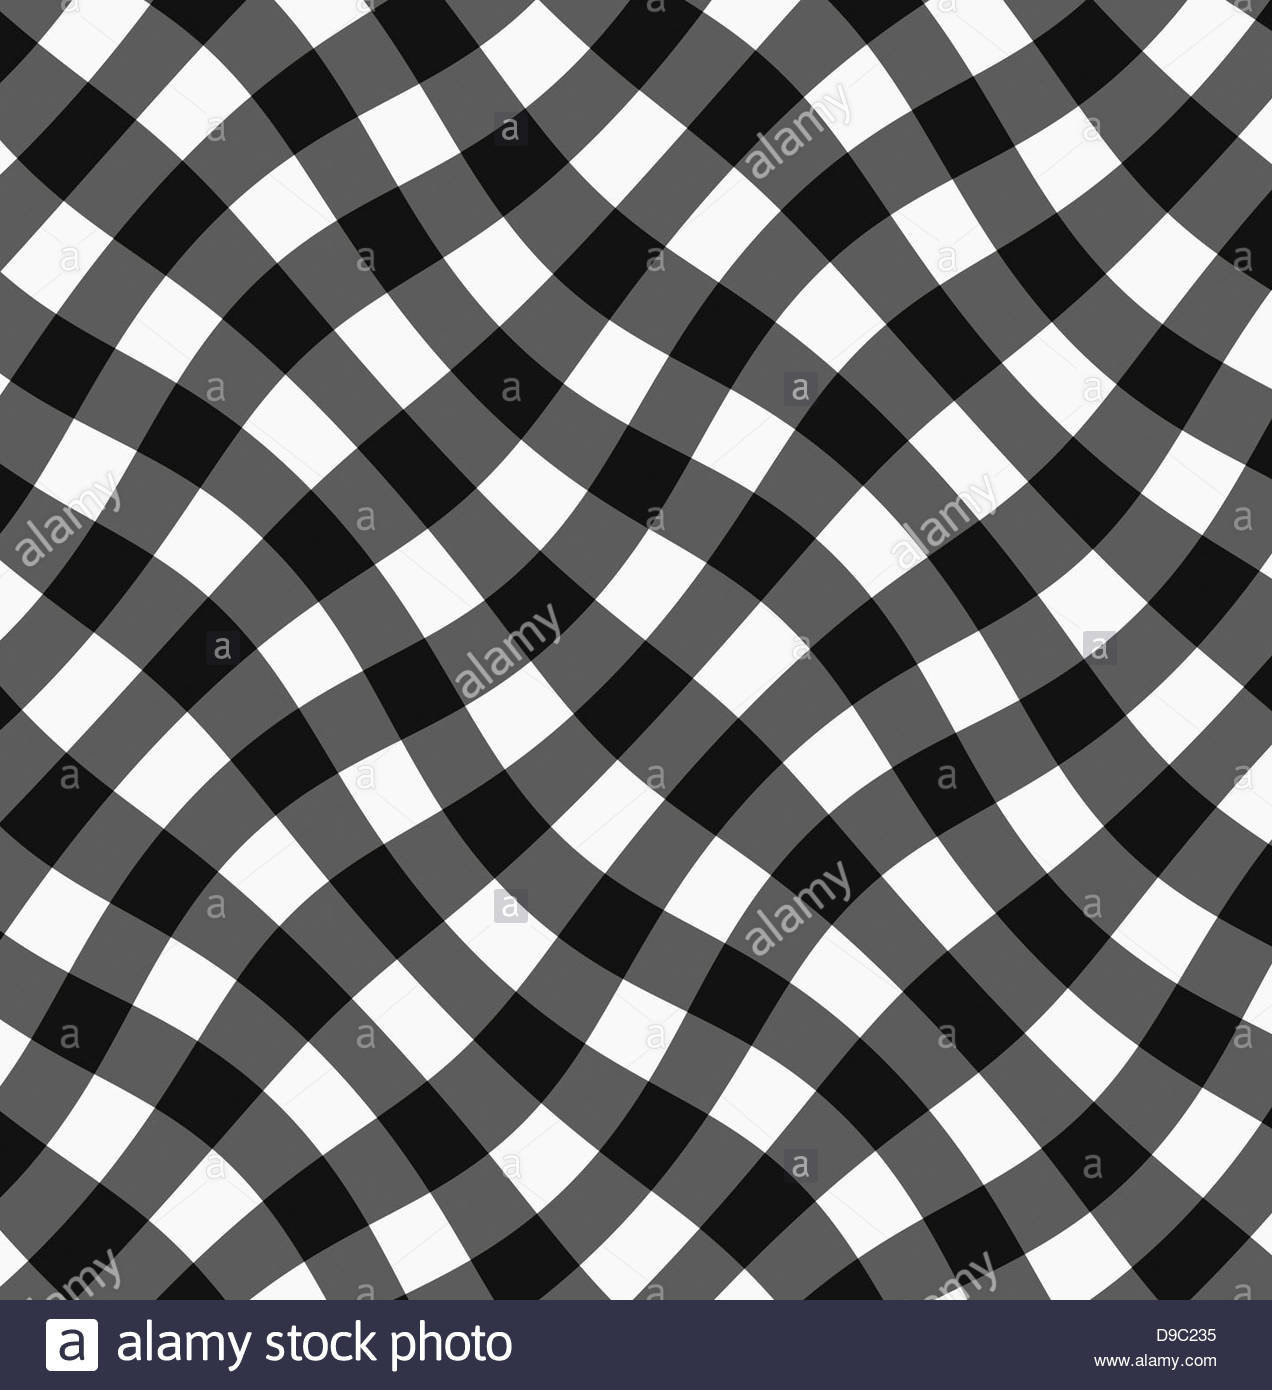 Digital composite background, black gingham, check, checked, checks, - Stock Image